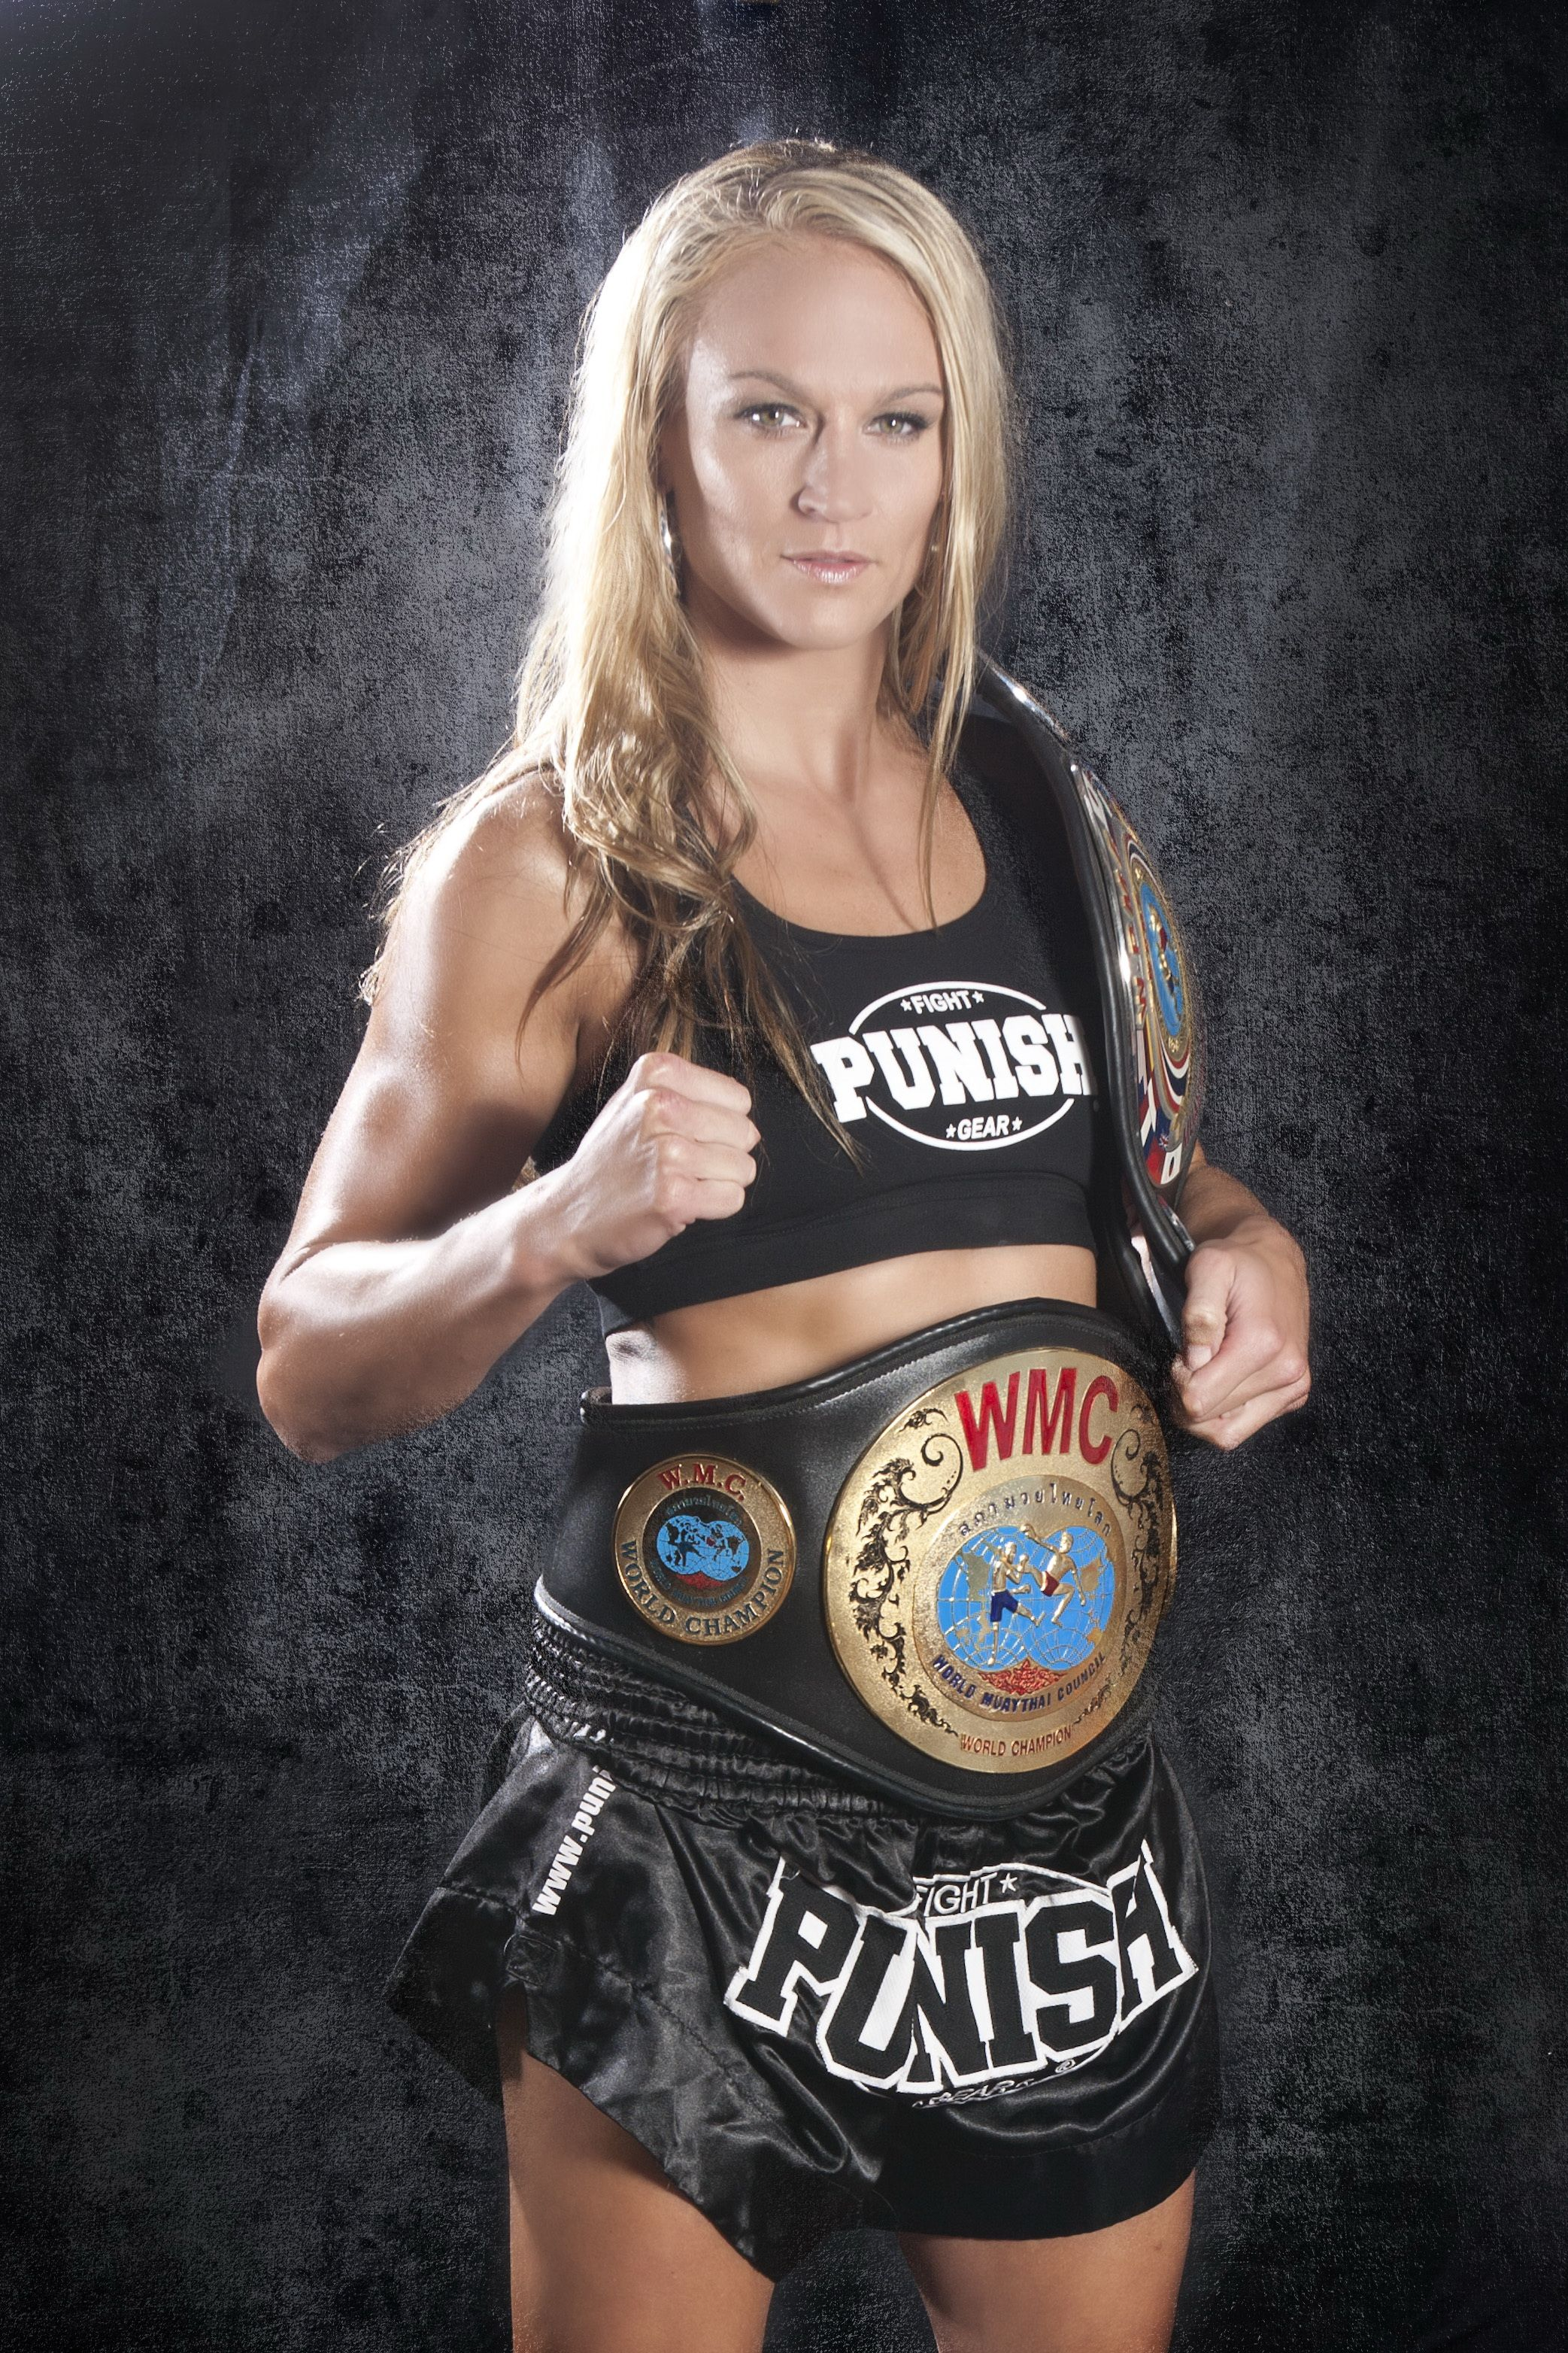 Caley Reece #Muay #Thai #fighter #champion